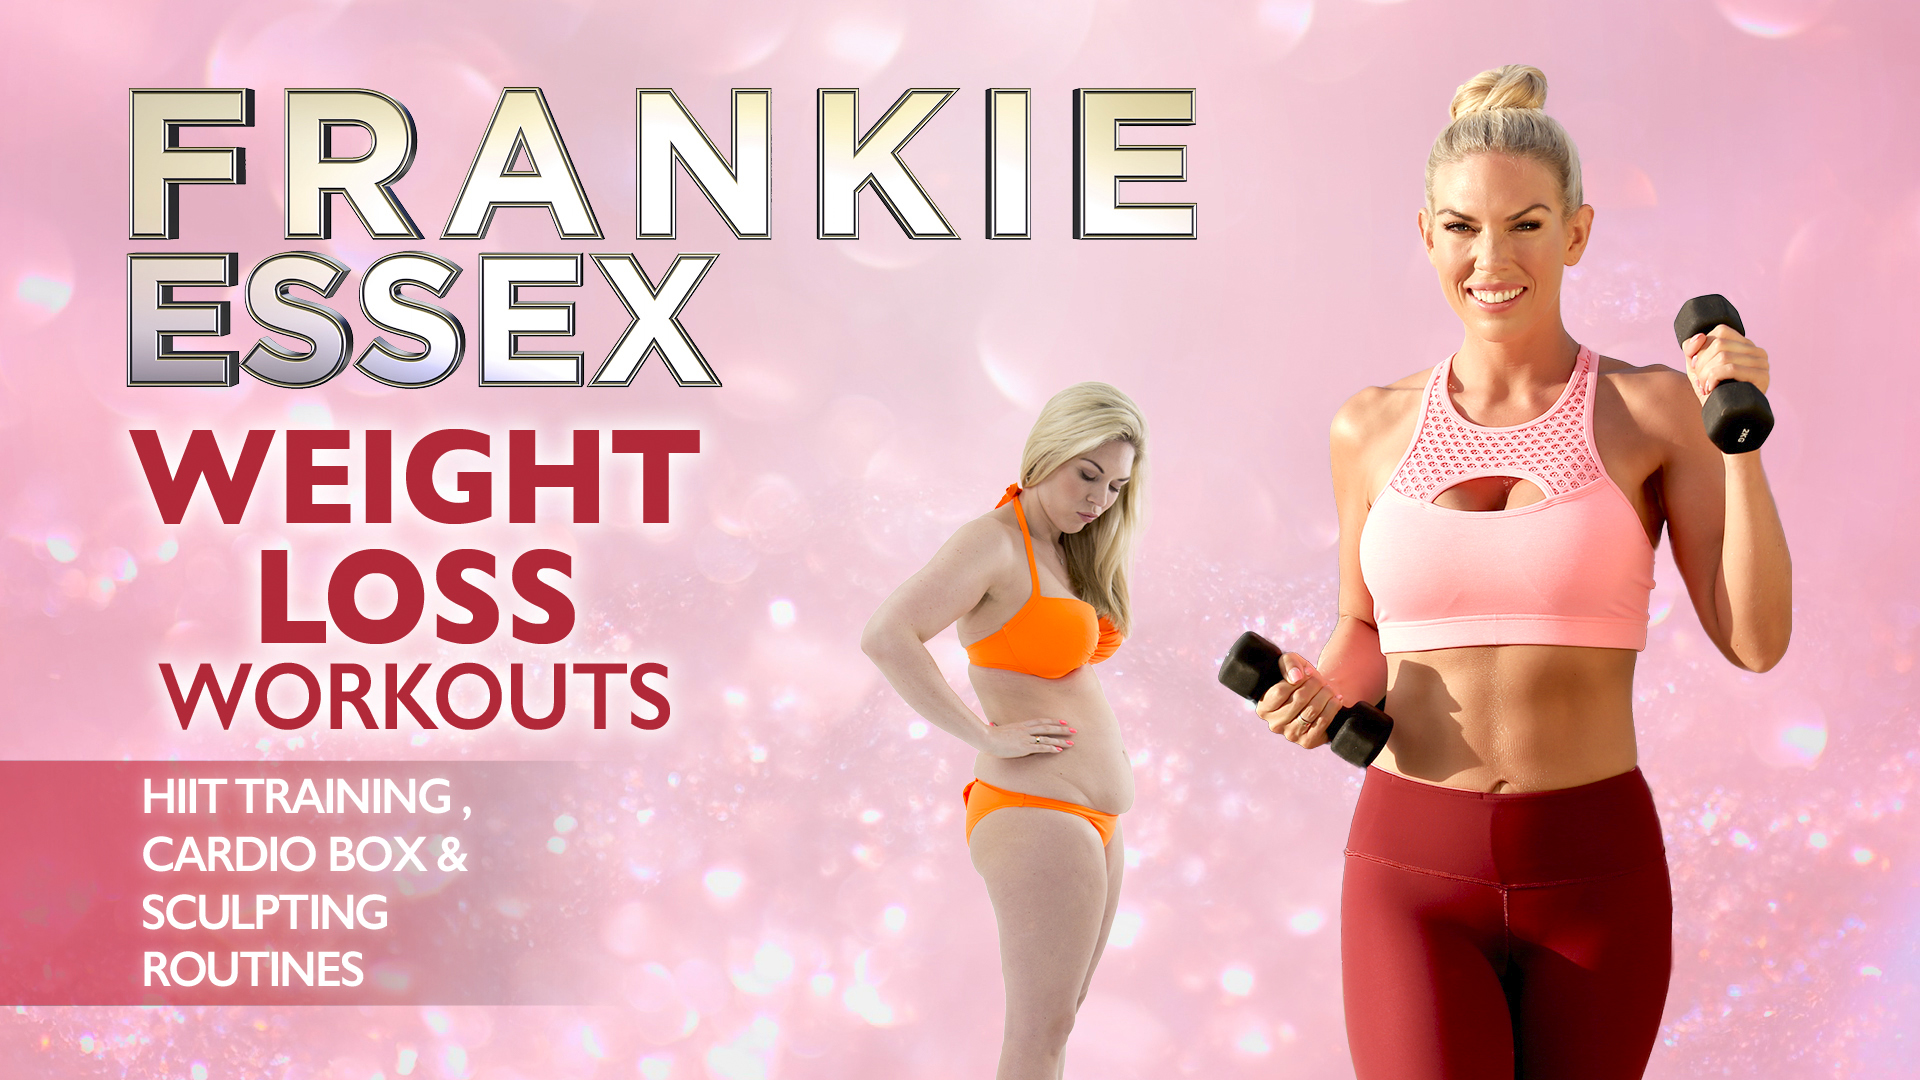 NS16108_FrankieEssex_WeightLossWorkouts_UK_1920